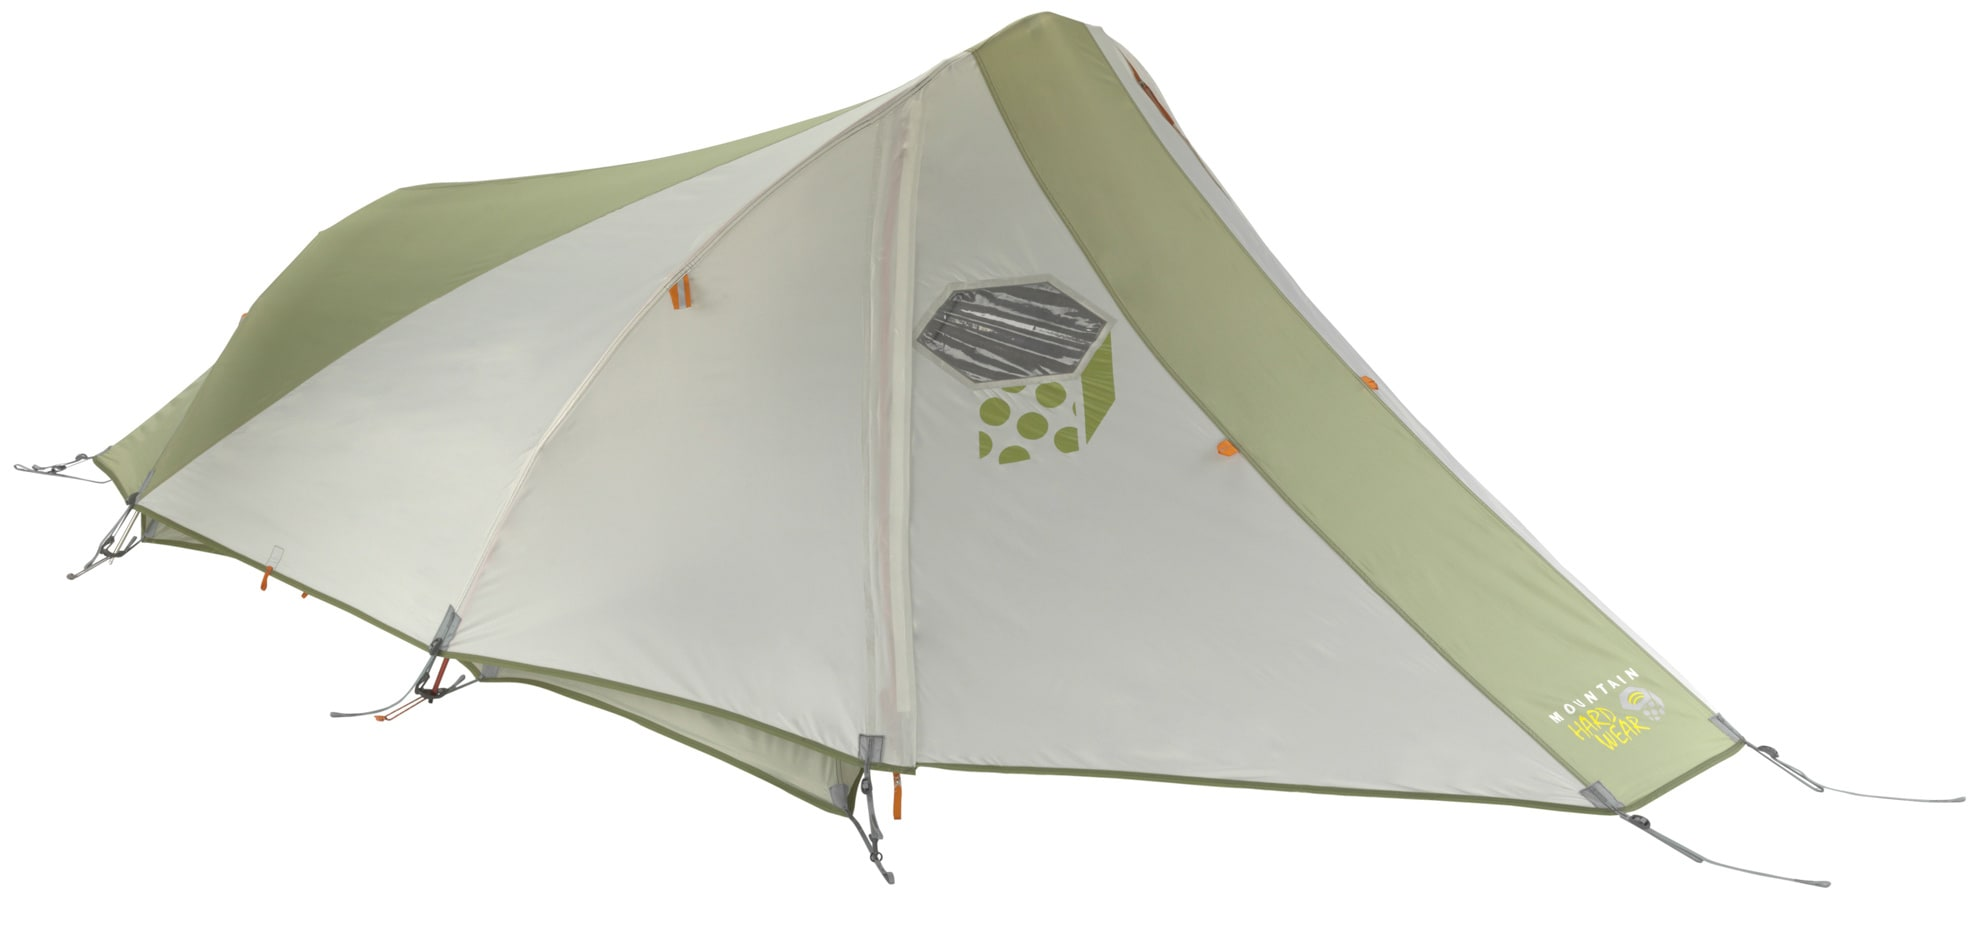 Mountain Hardwear Lightpath 2 Tent - thumbnail 1  sc 1 st  The House & On Sale Mountain Hardwear Lightpath 2 Tent up to 65% off